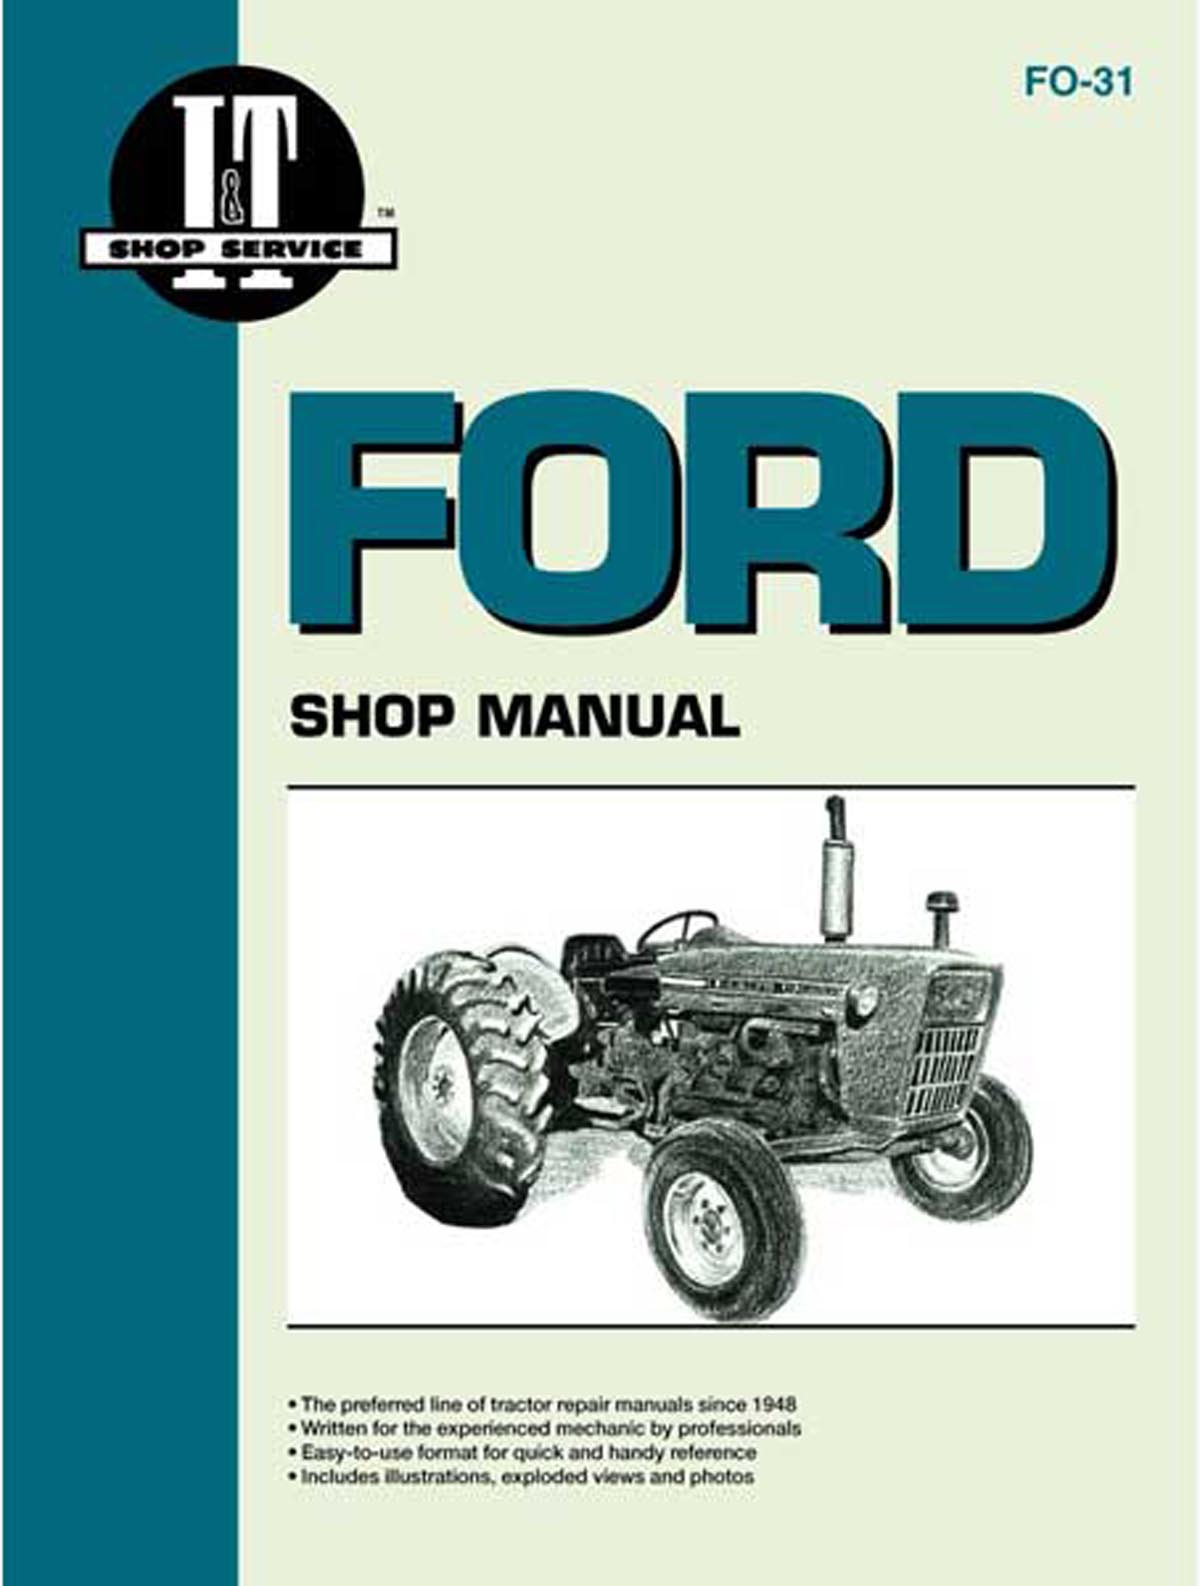 it s fo31 i t shop service manual ford n tractor parts parts